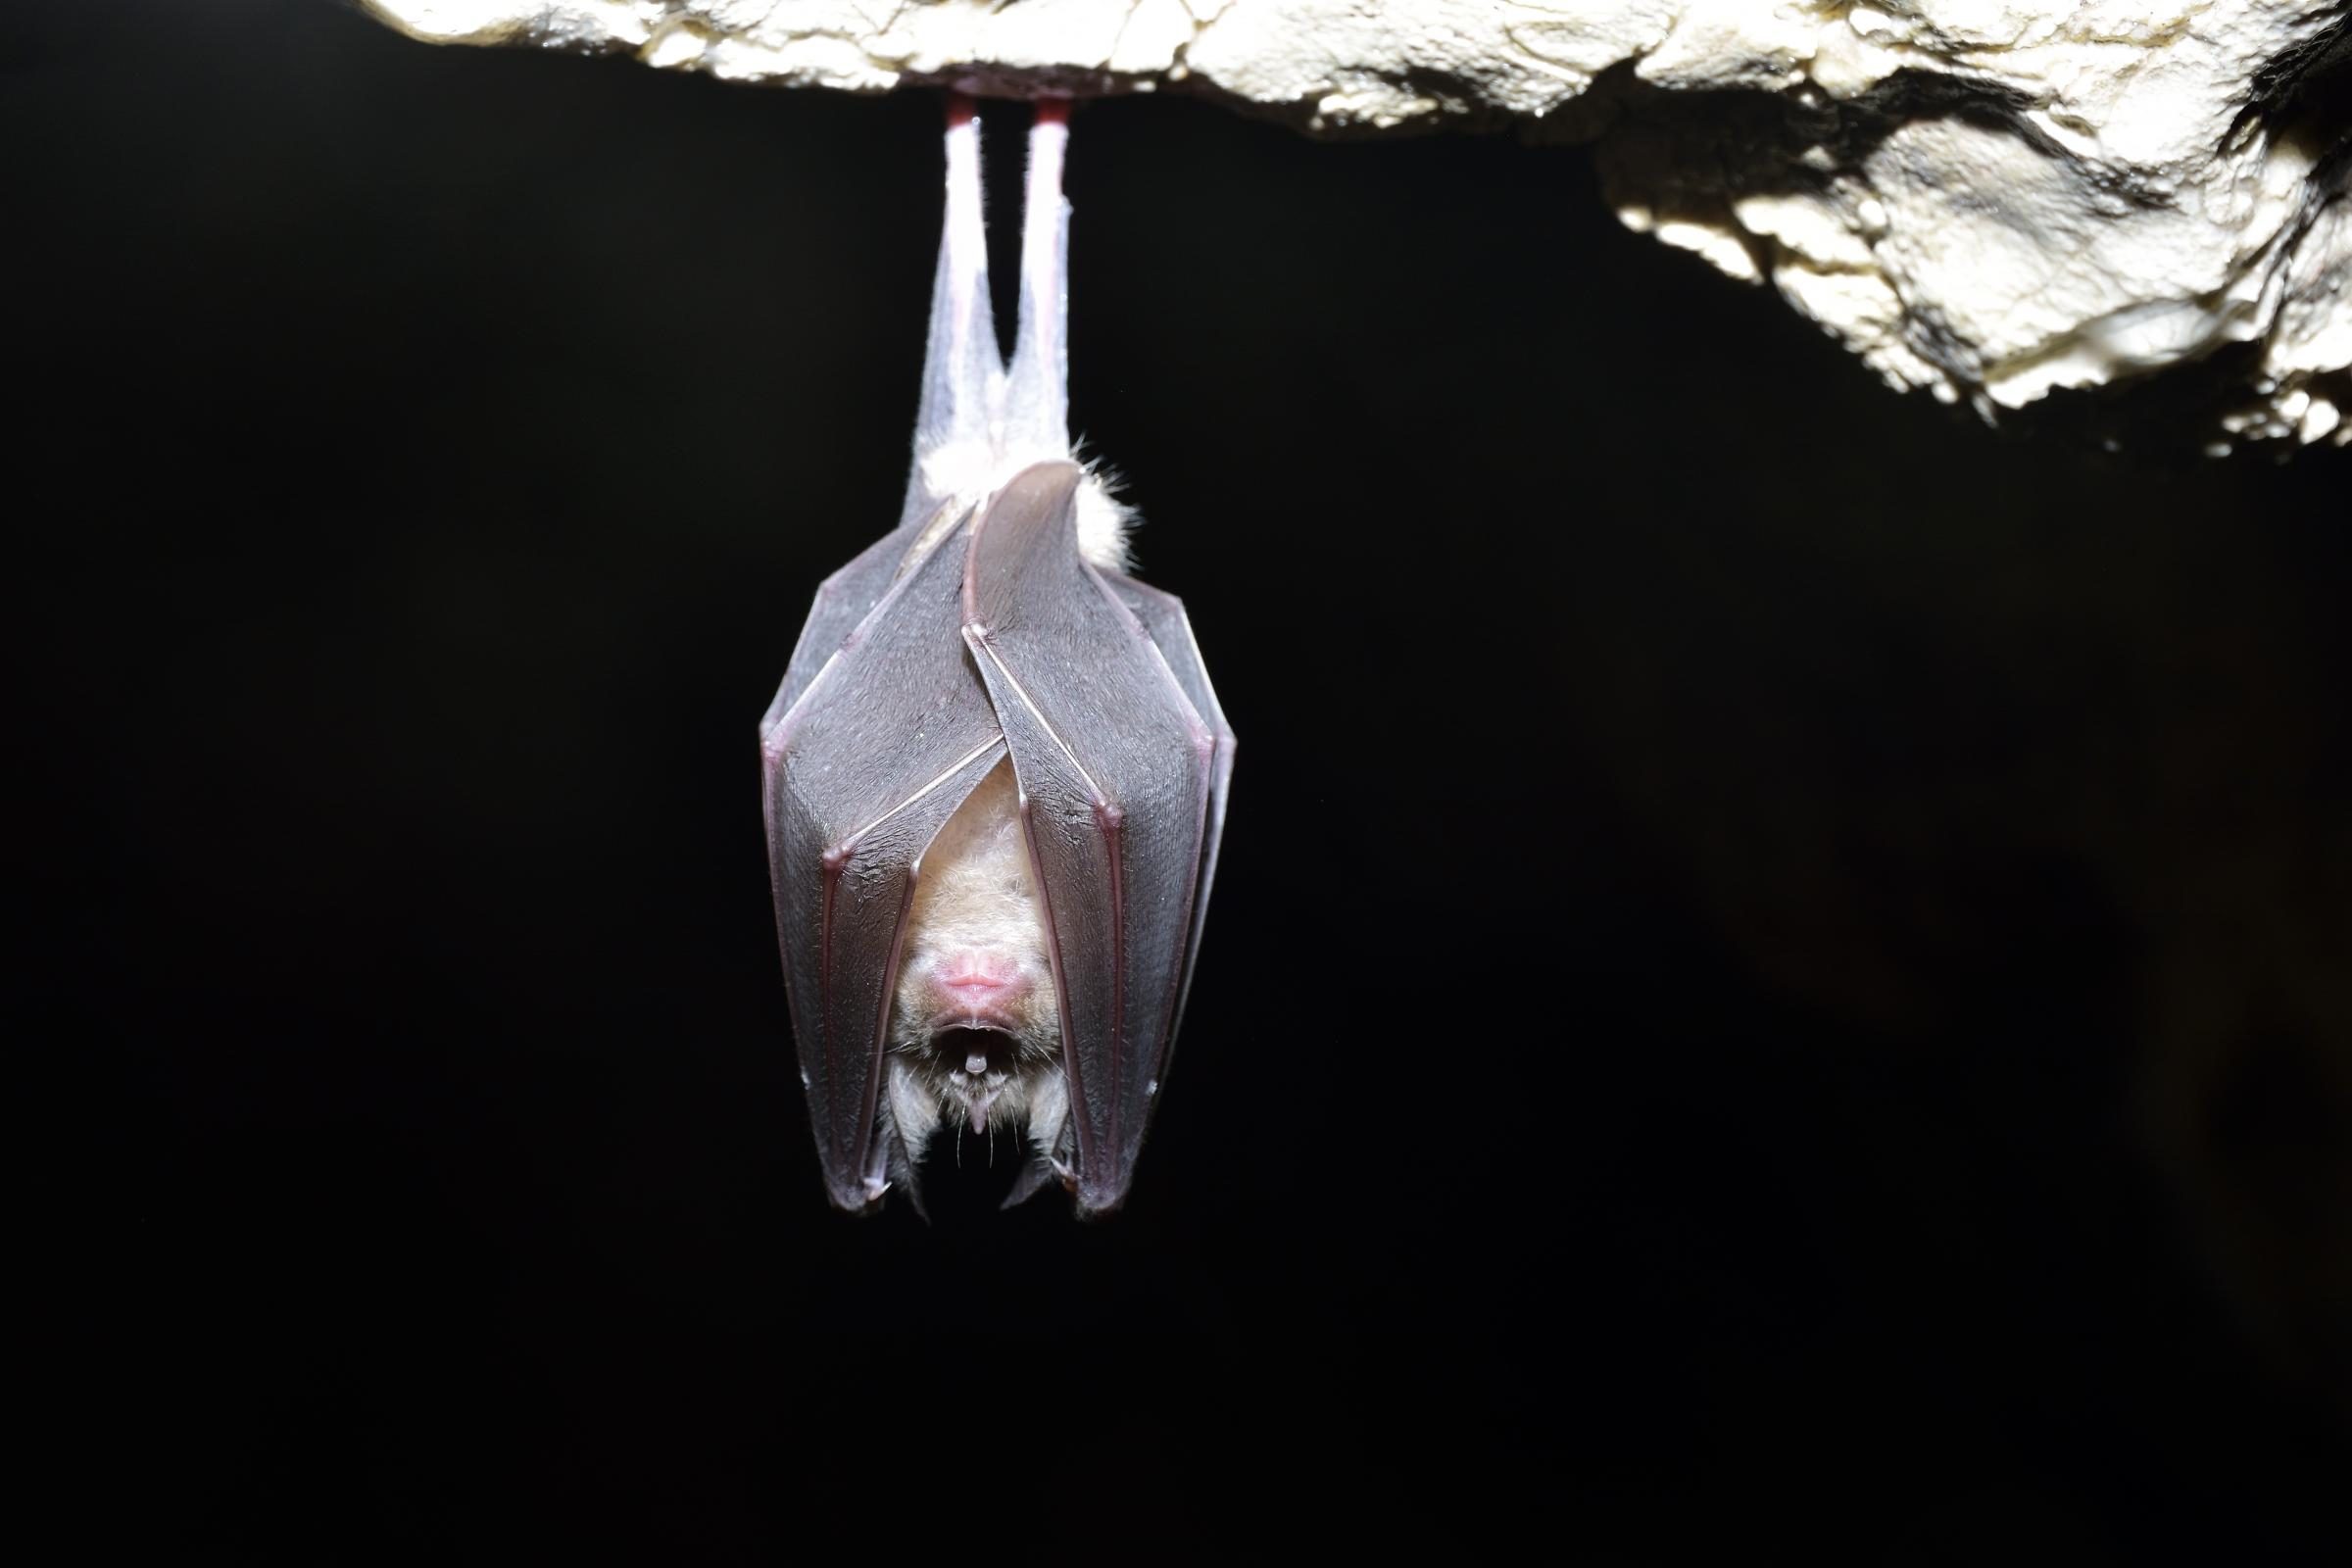 Greater horseshoe bat( Rhinolophus ferrumequinum).